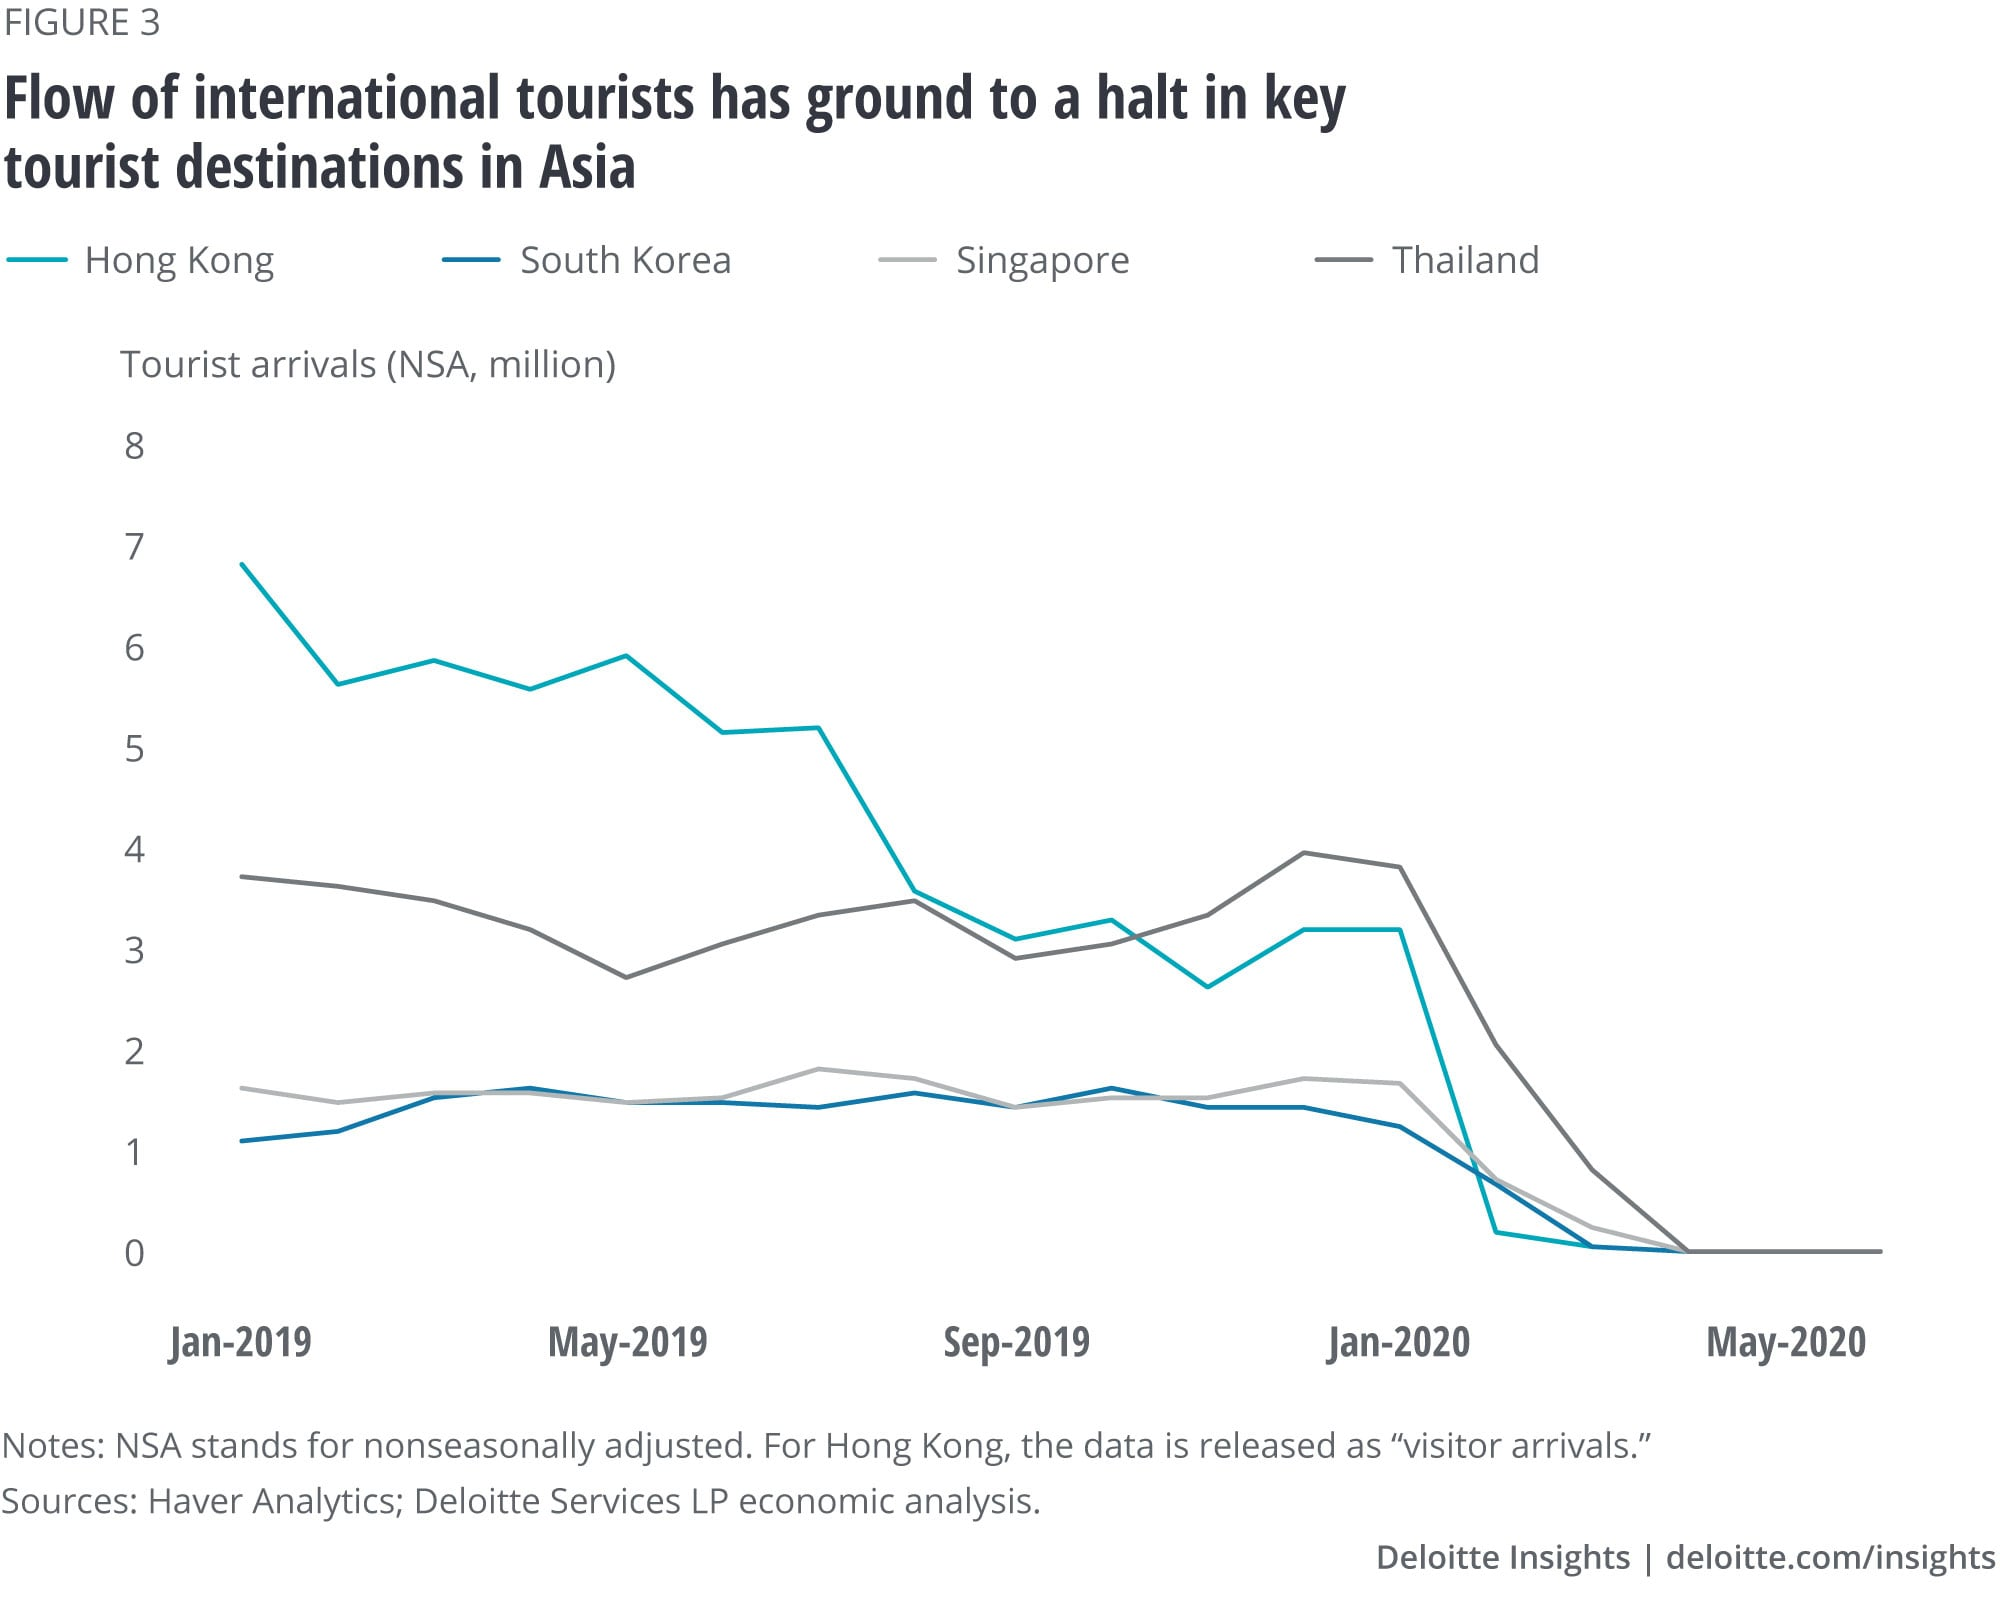 Flow of international tourists has ground to a halt in key tourist destinations in Asia